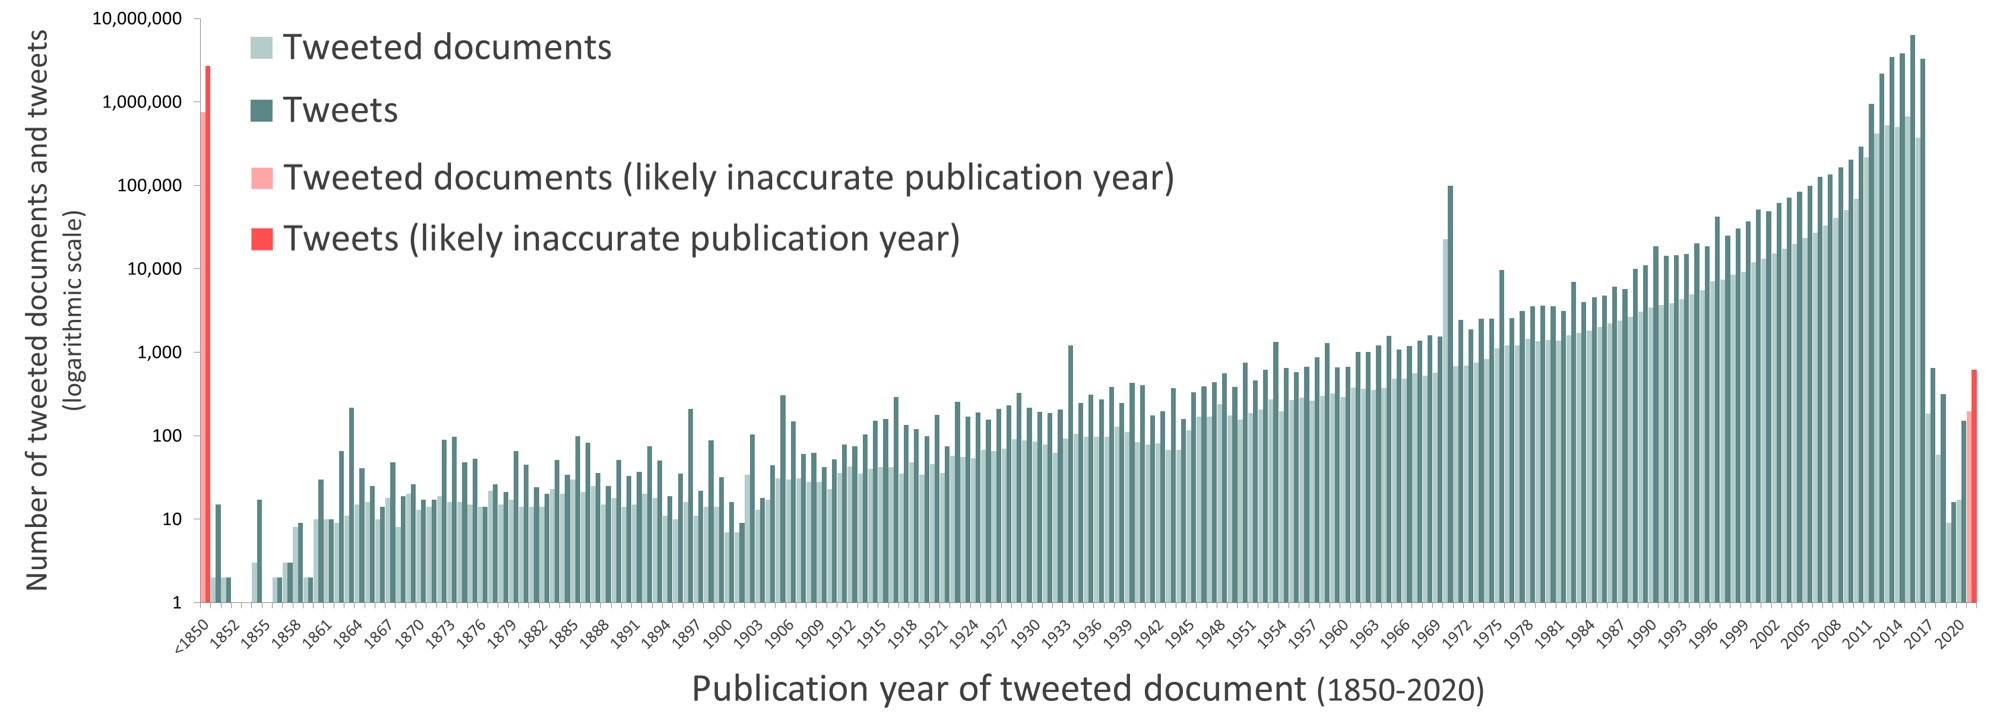 graph for publication year